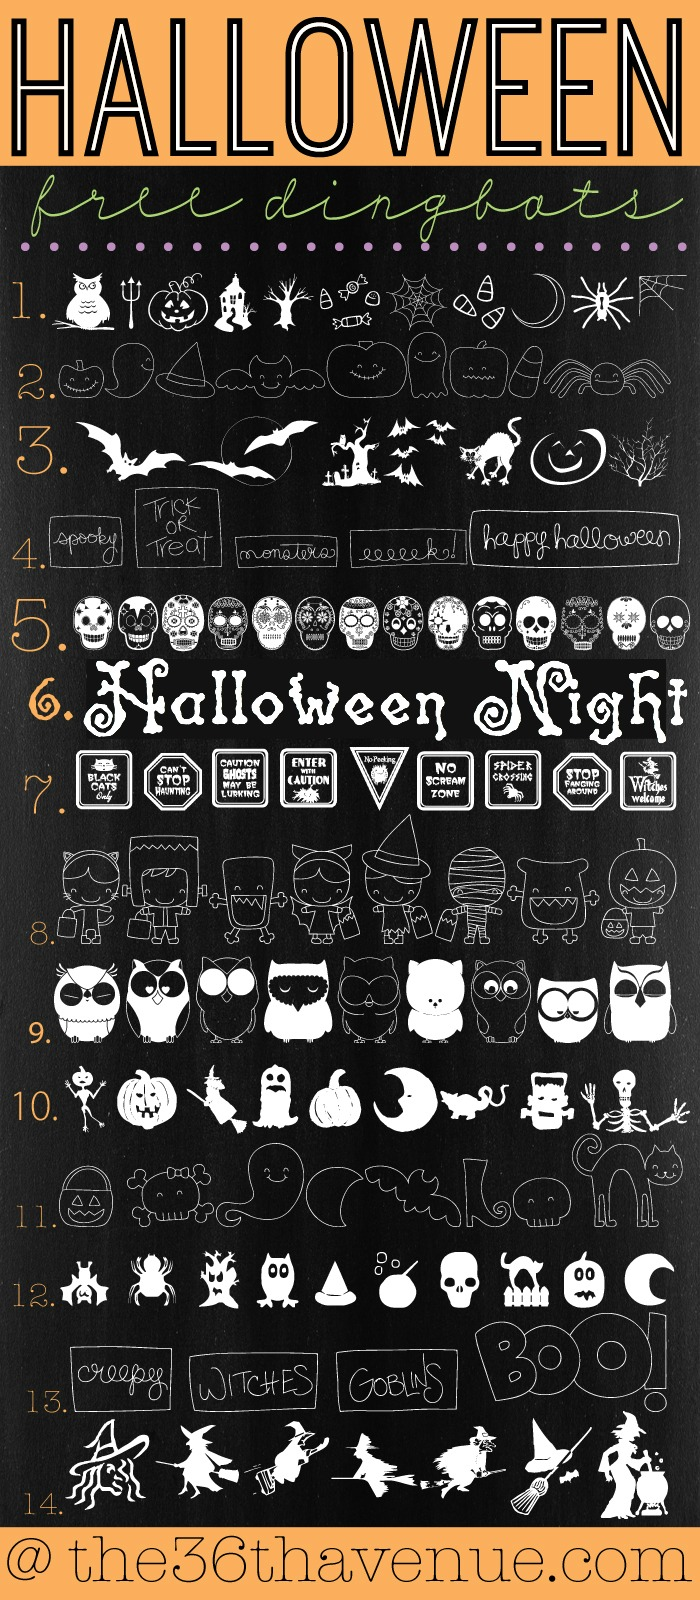 Halloween-Dingbats-the36thavenue.com